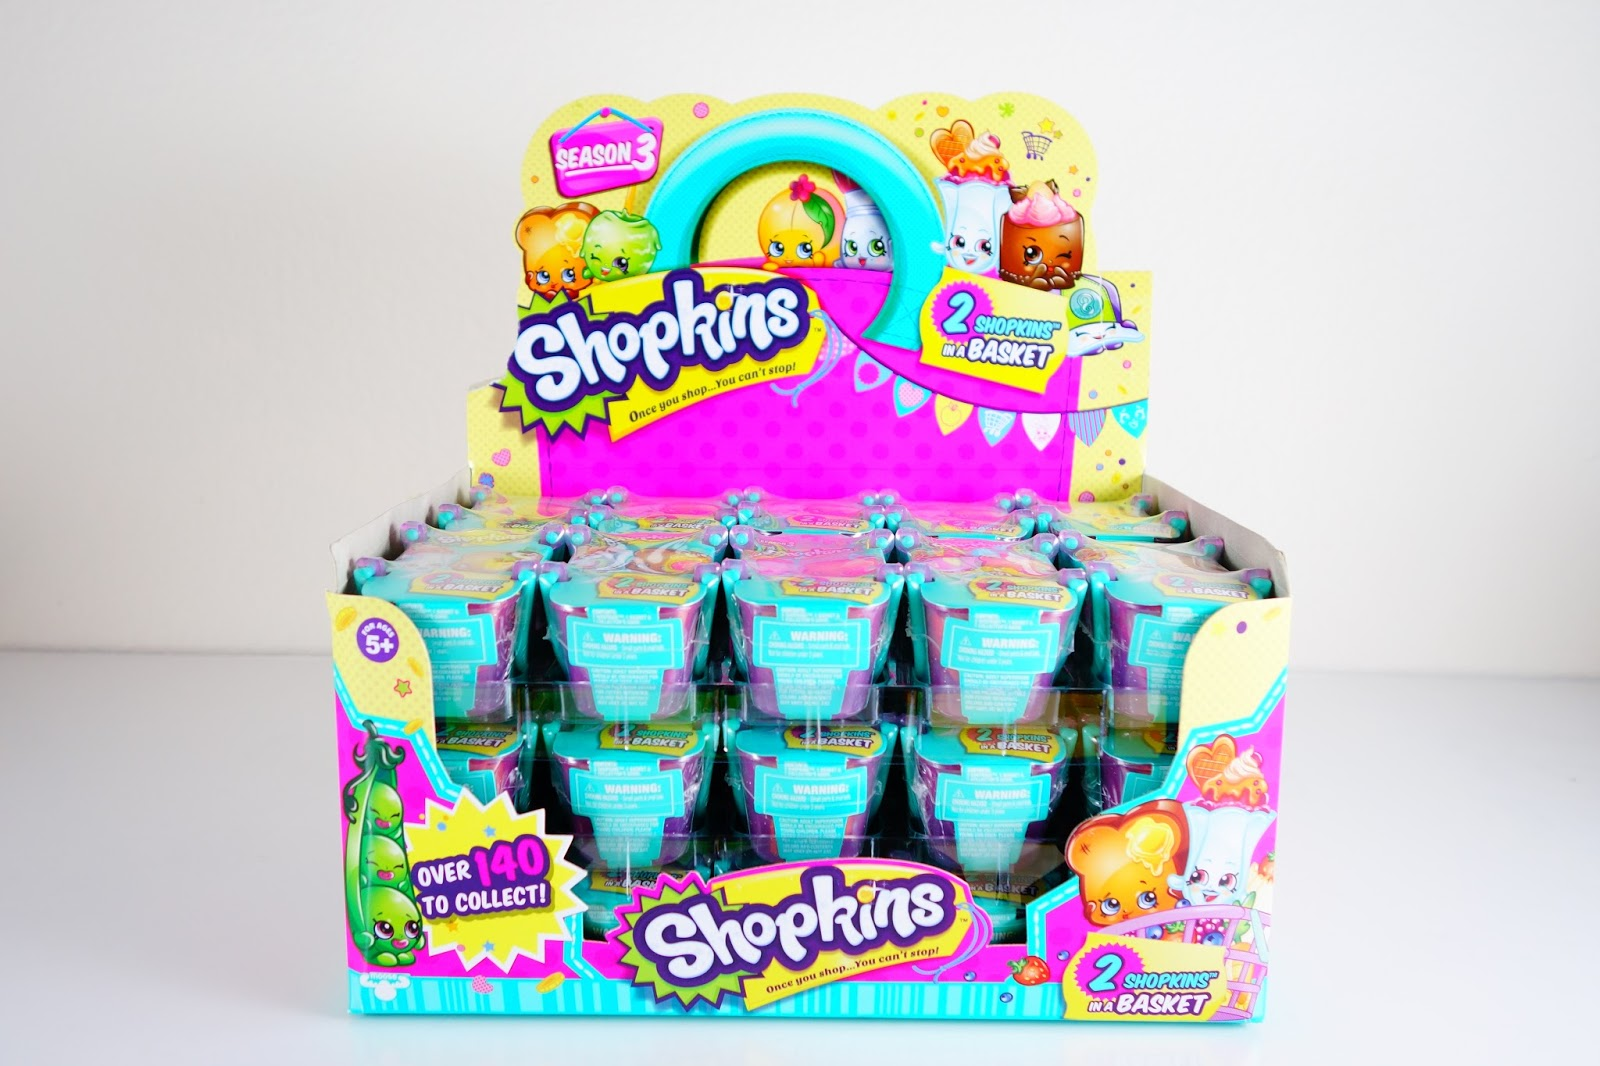 Evie's Toy House - Toy Reviews: Shopkins Craze - Where to